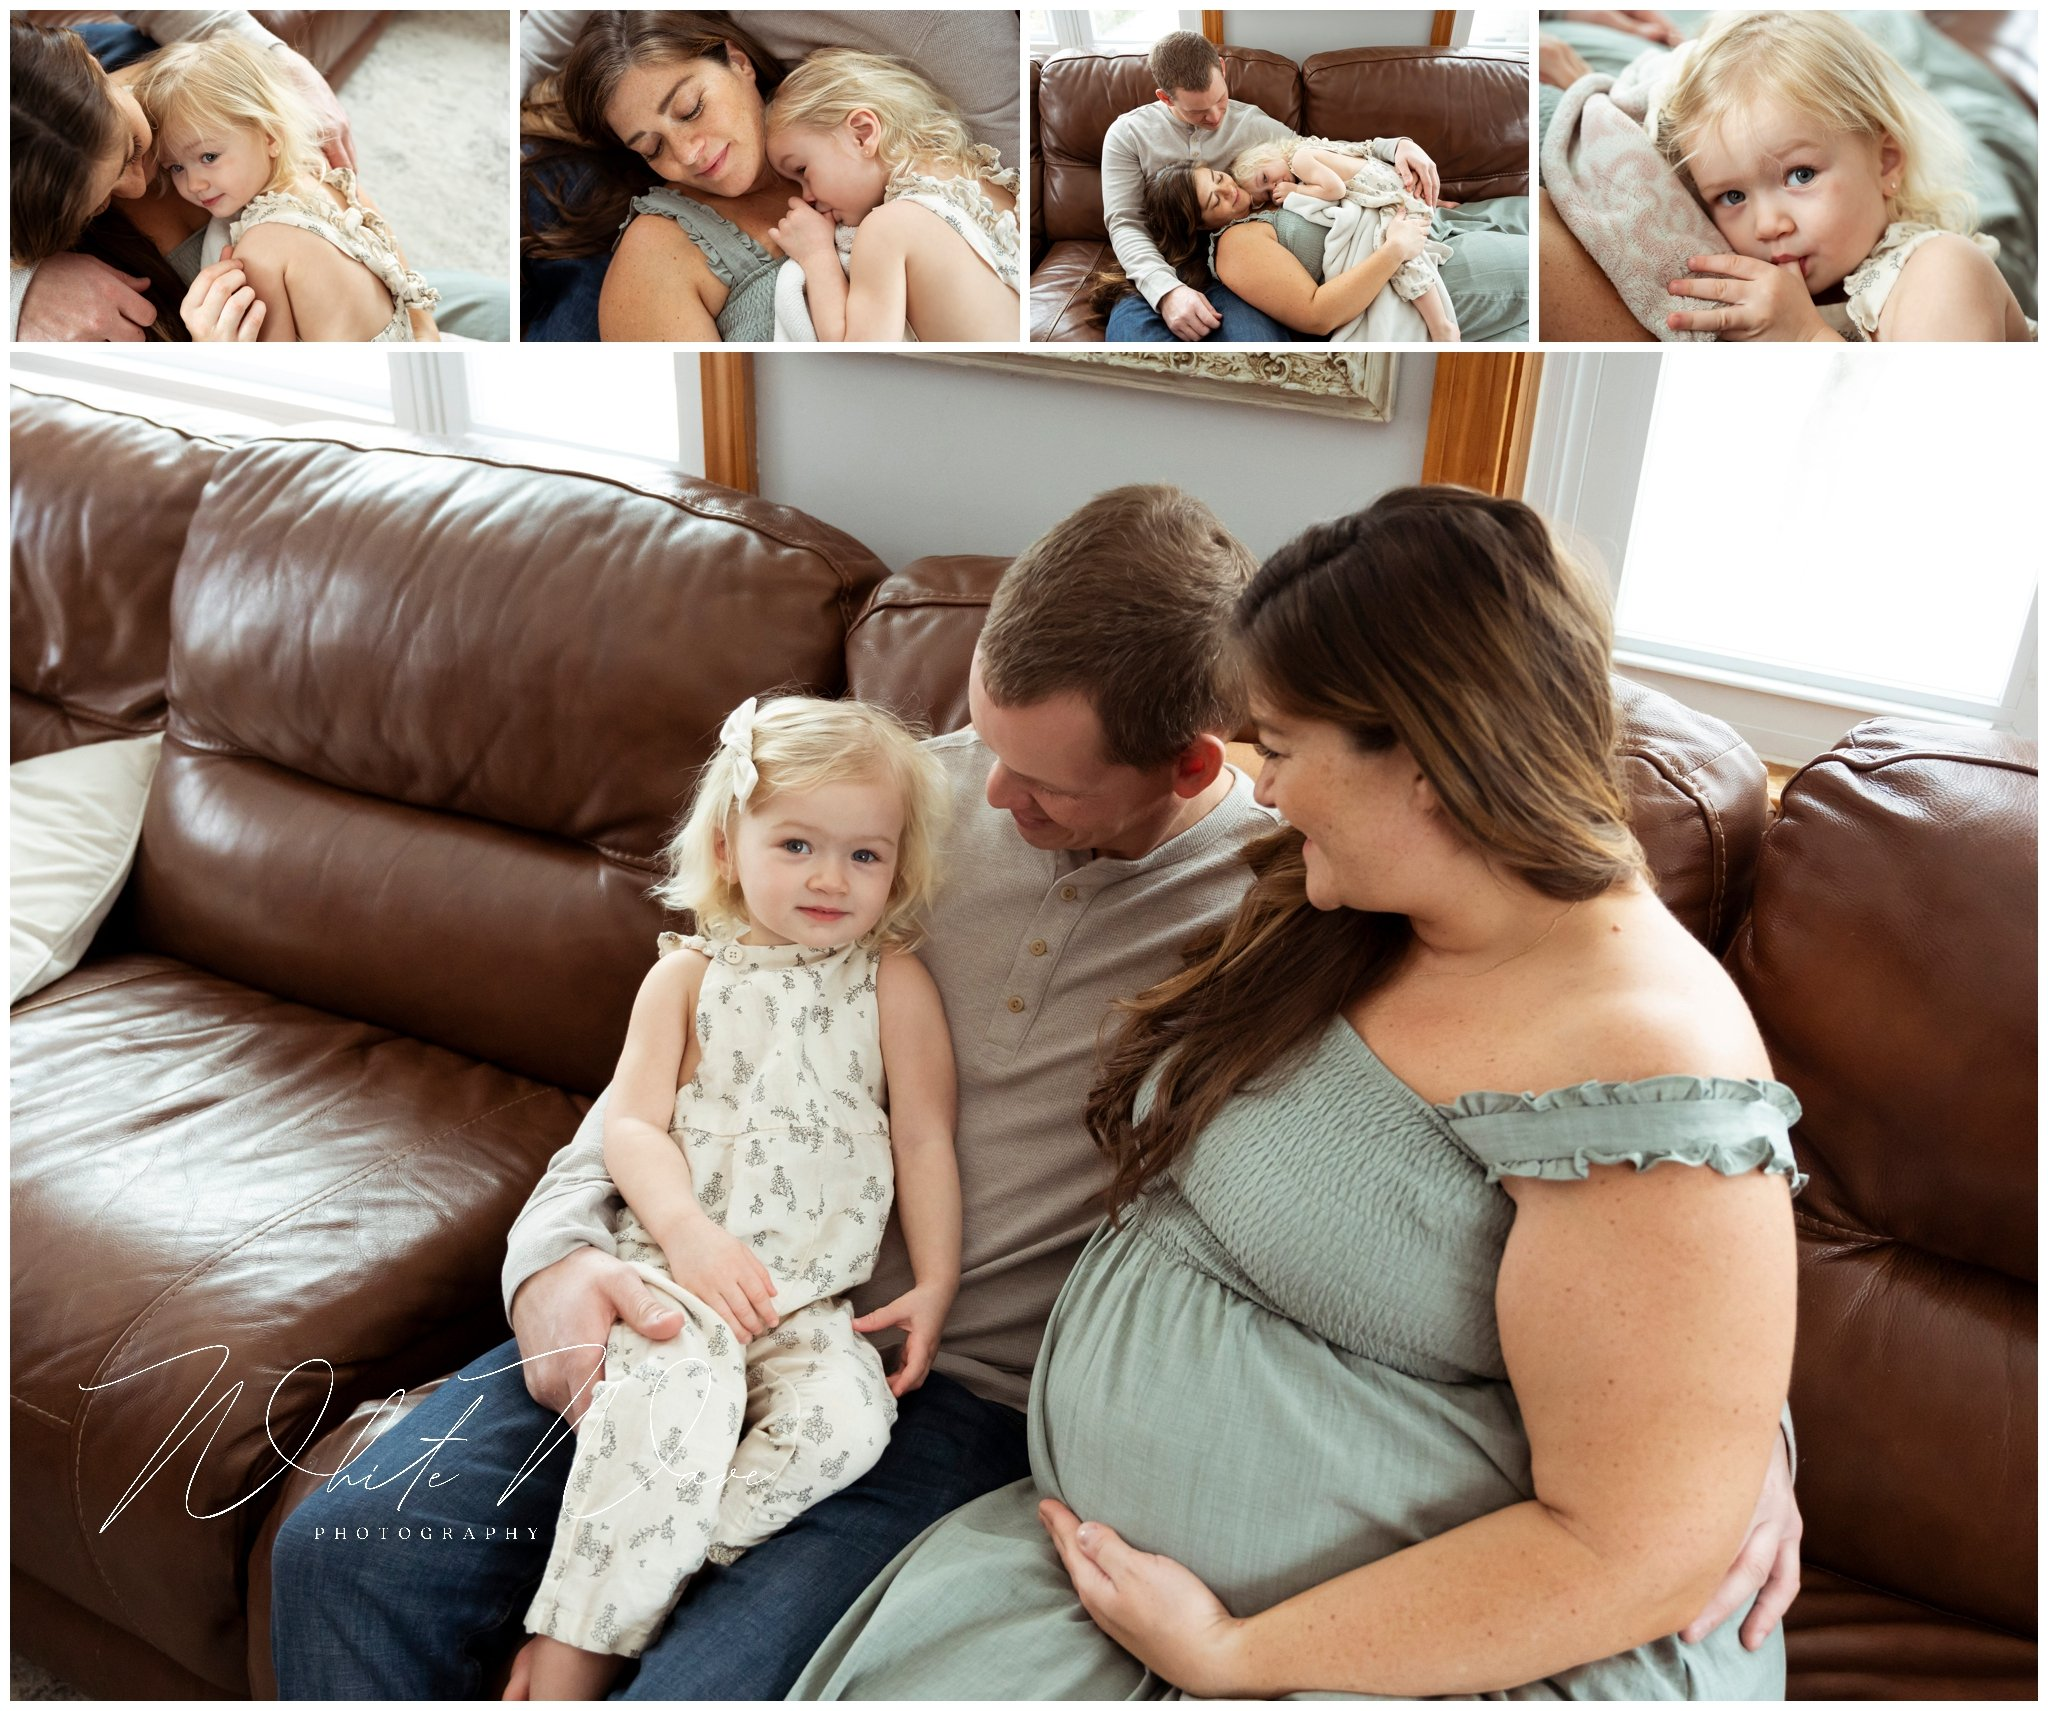 NH Maternity Photographer, White Wave Photography, tells the story of Kayla's at home maternity session.